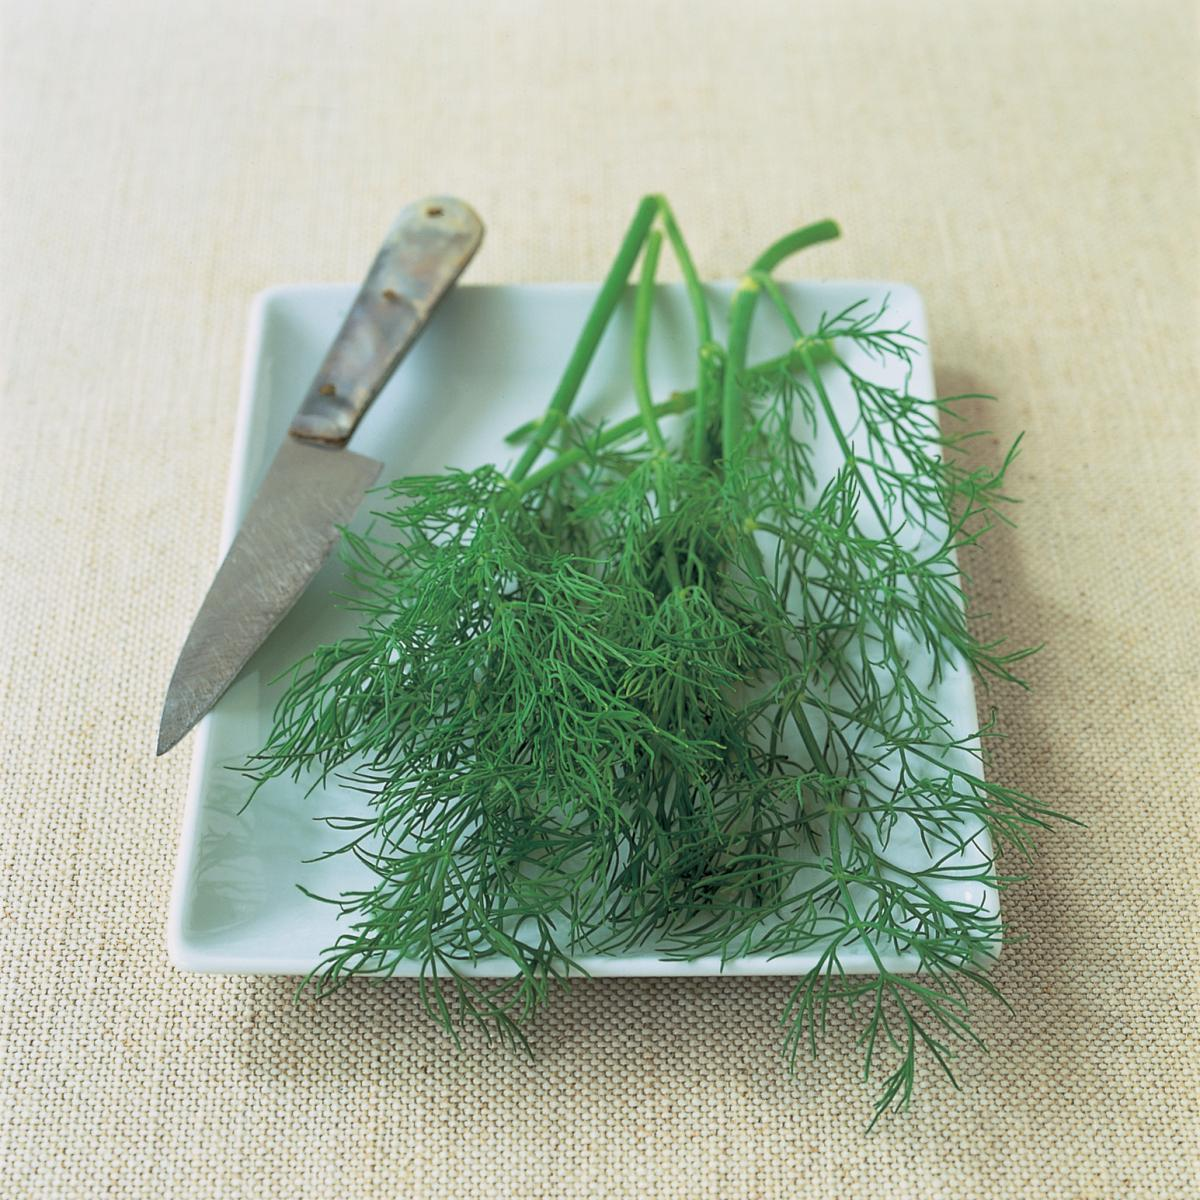 Ingredient fish dill